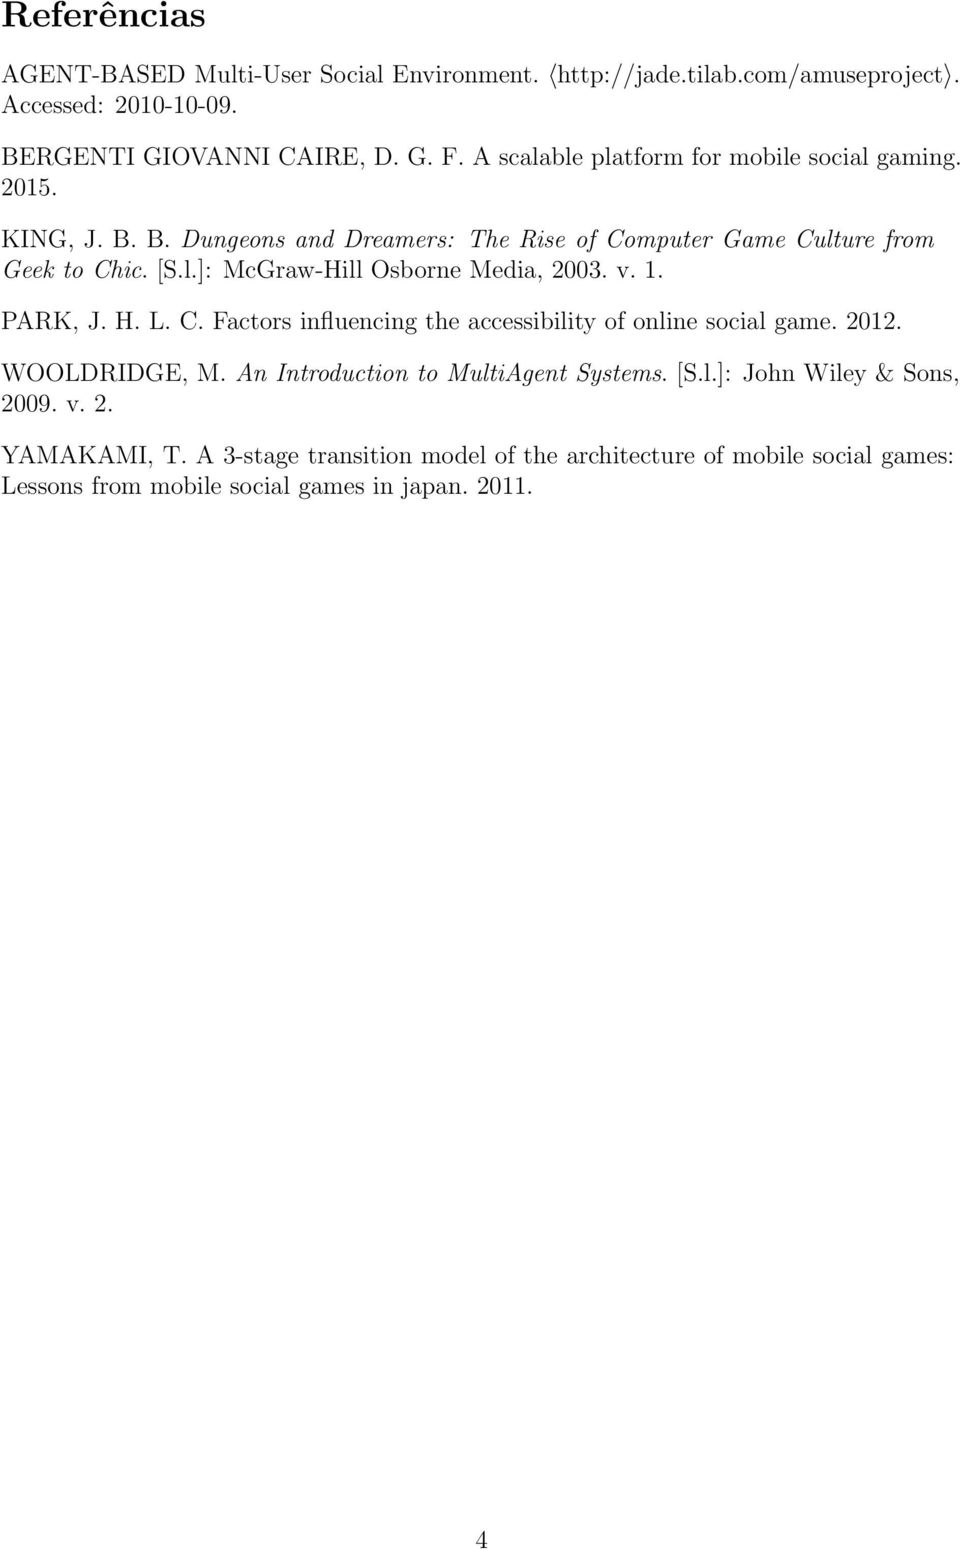 v. 1. PARK, J. H. L. C. Factors influencing the accessibility of online social game. 2012. WOOLDRIDGE, M. An Introduction to MultiAgent Systems. [S.l.]: John Wiley & Sons, 2009.